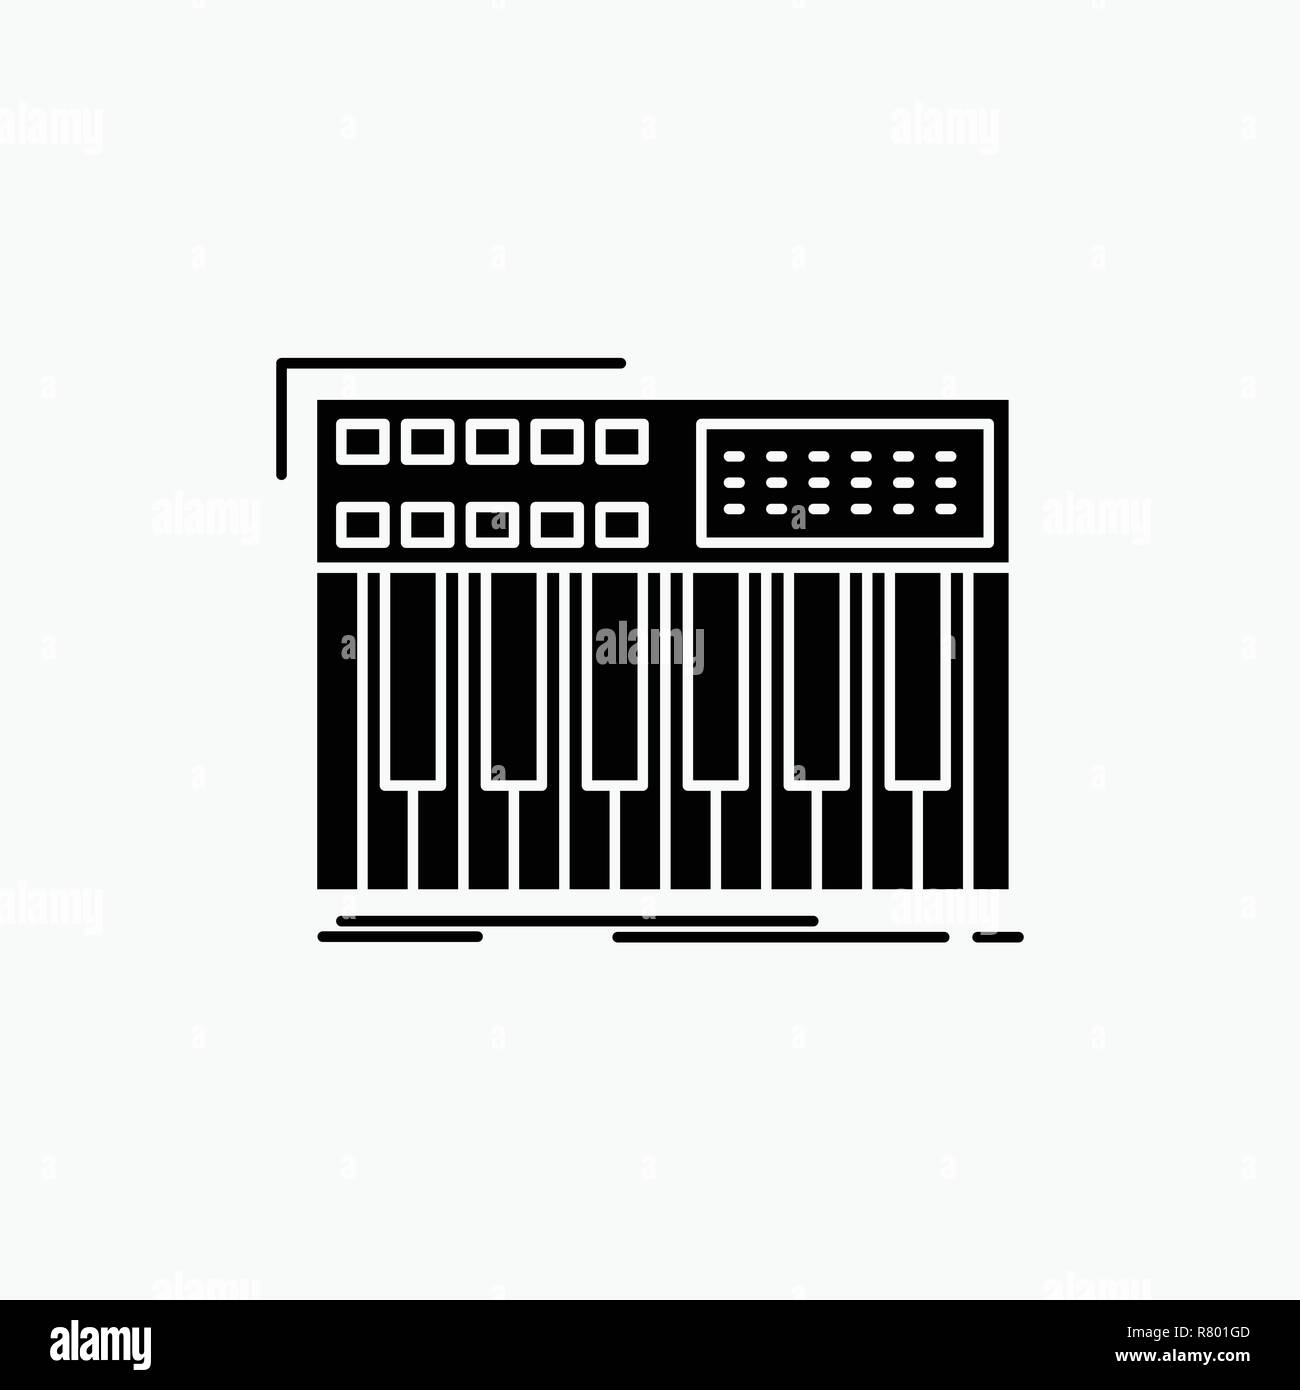 synth, keyboard, midi, synthesiser, synthesizer Glyph Icon. Vector isolated illustration - Stock Image